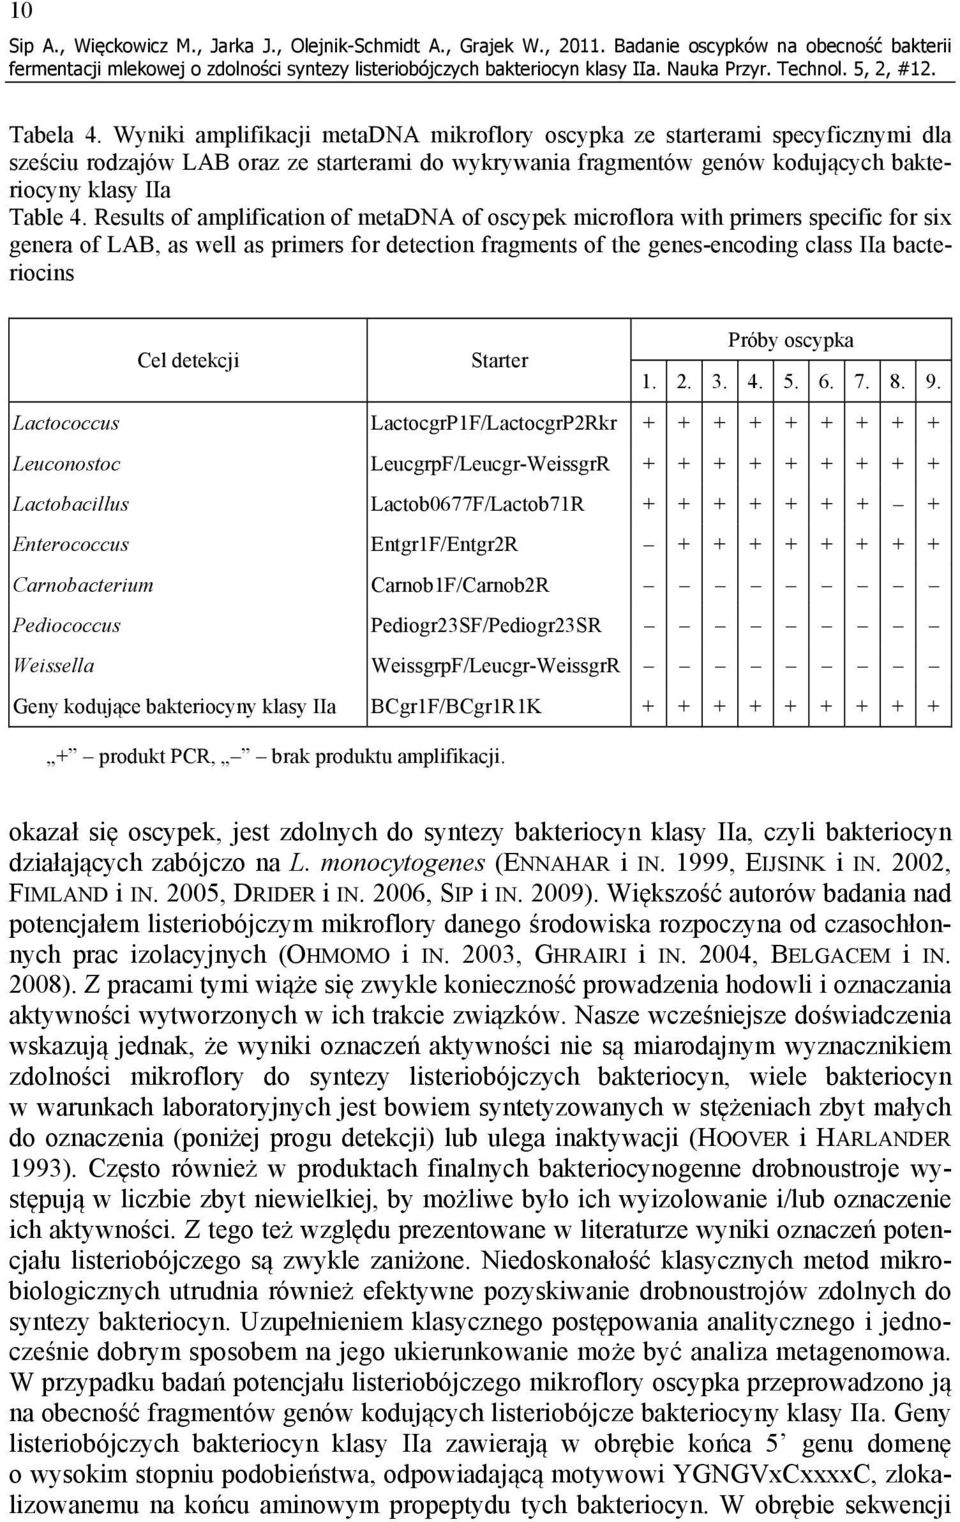 Results of amplification of metadna of oscypek microflora with primers specific for six genera of LAB, as well as primers for detection fragments of the genes-encoding class IIa bacteriocins Próby